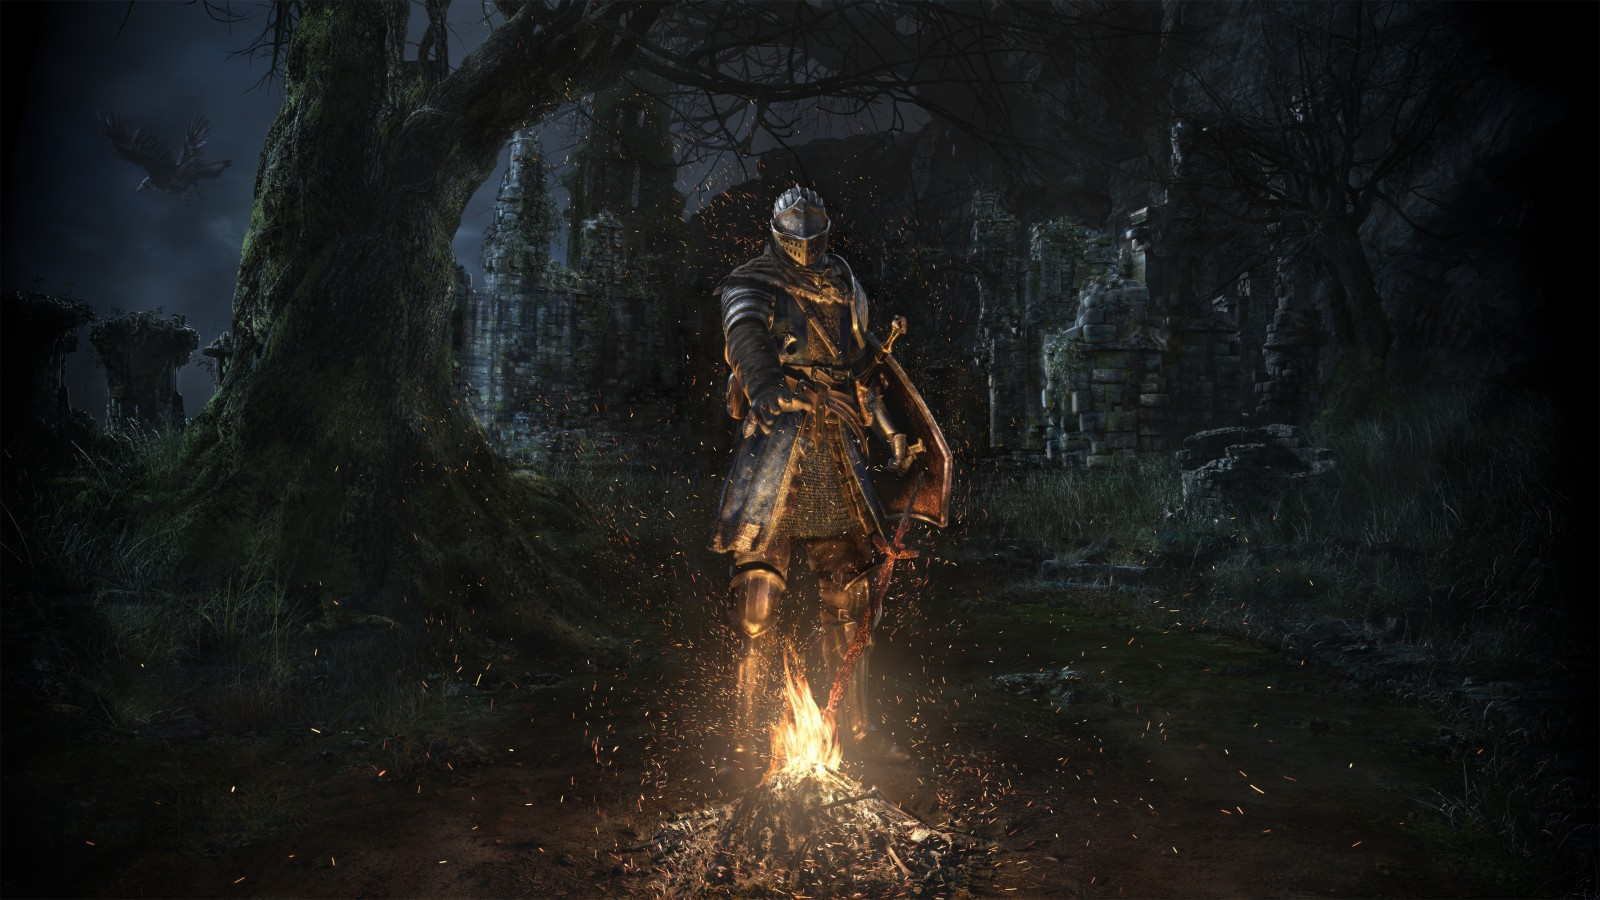 Cute Anime 3d Wallpaper Dark Souls Remastered 4k Wallpapers Hd Wallpapers Id